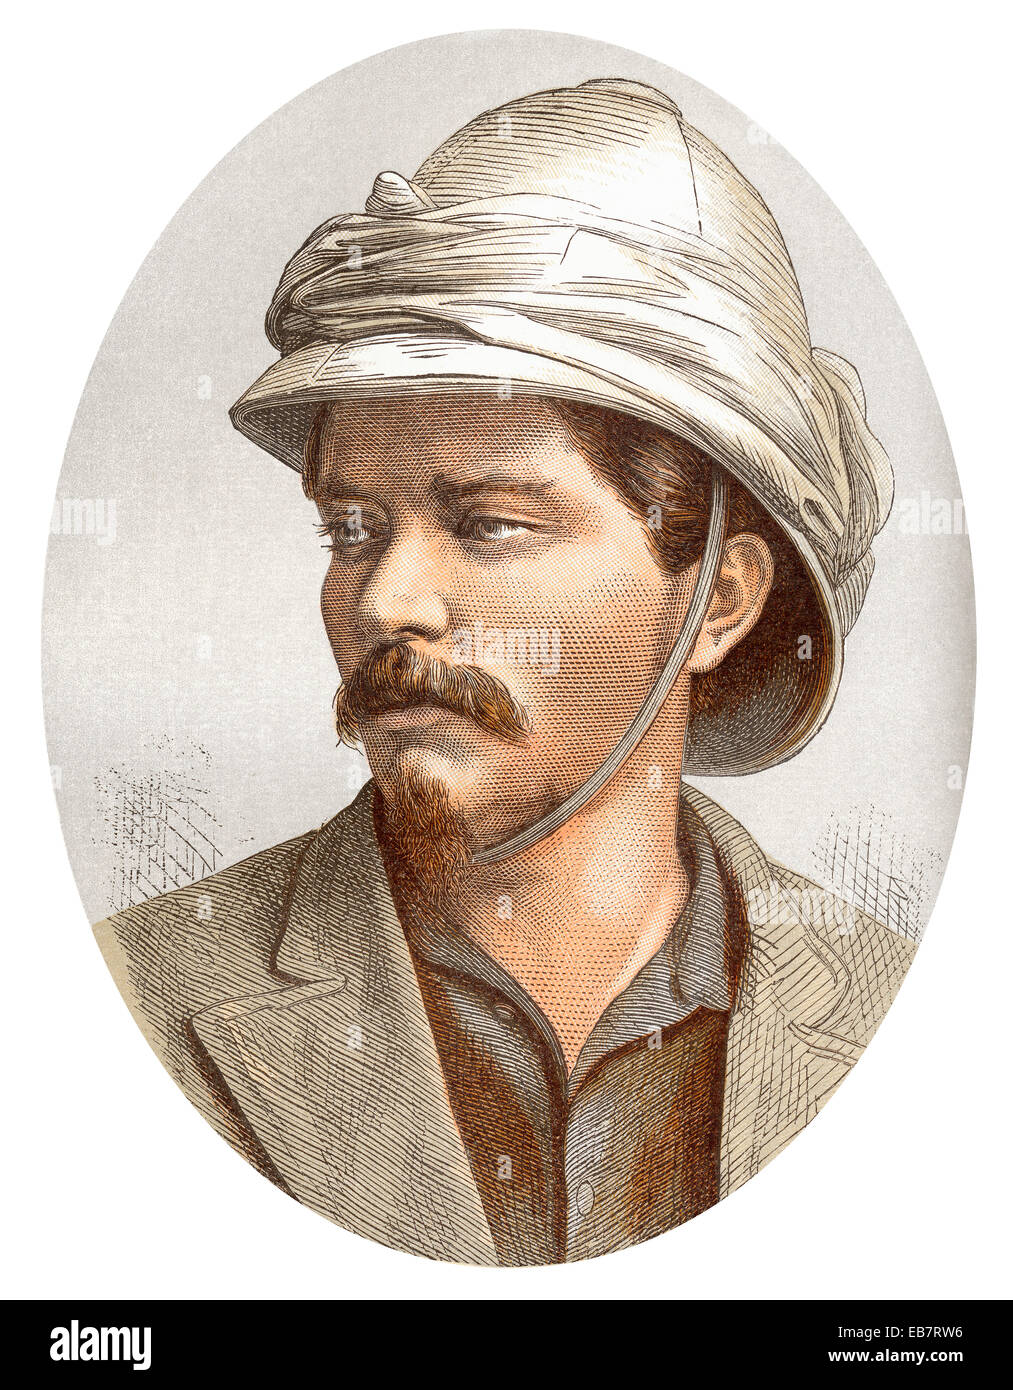 Sir Henry Morton Stanley, 1841  - 1904, a Welsh journalist and explorer,  famous for his discovery of the source - Stock Image